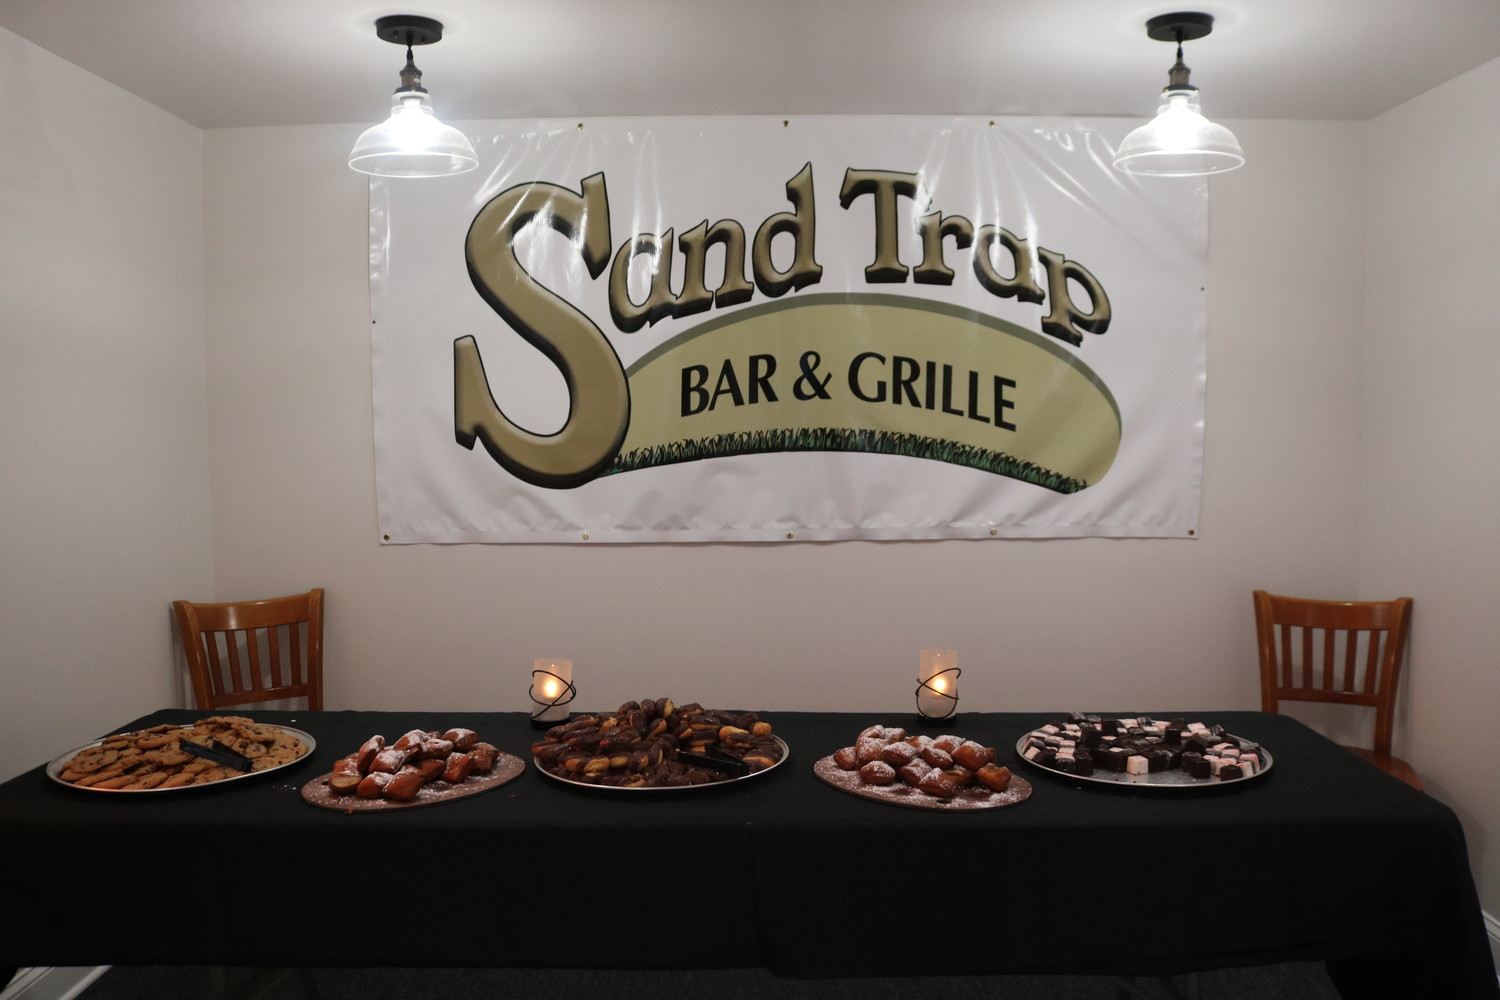 Sand Trap Bar & Grille is the restaurant available for guests at the Jax Beach Golf Club.